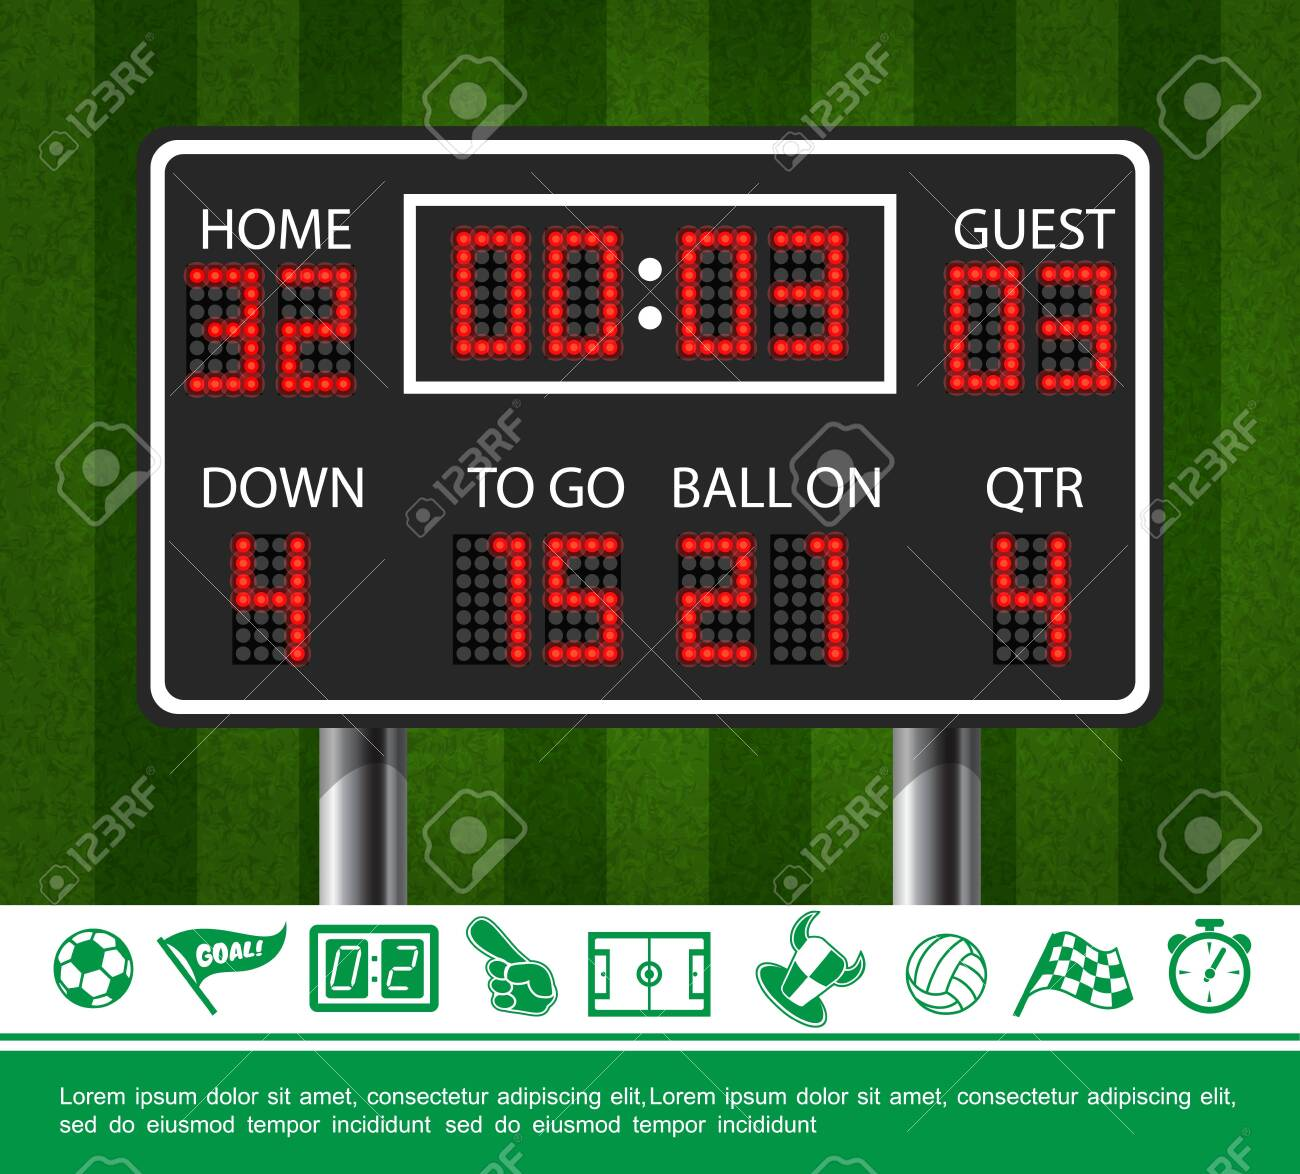 Colorful Sport Concept With American Football Scoreboard On Green